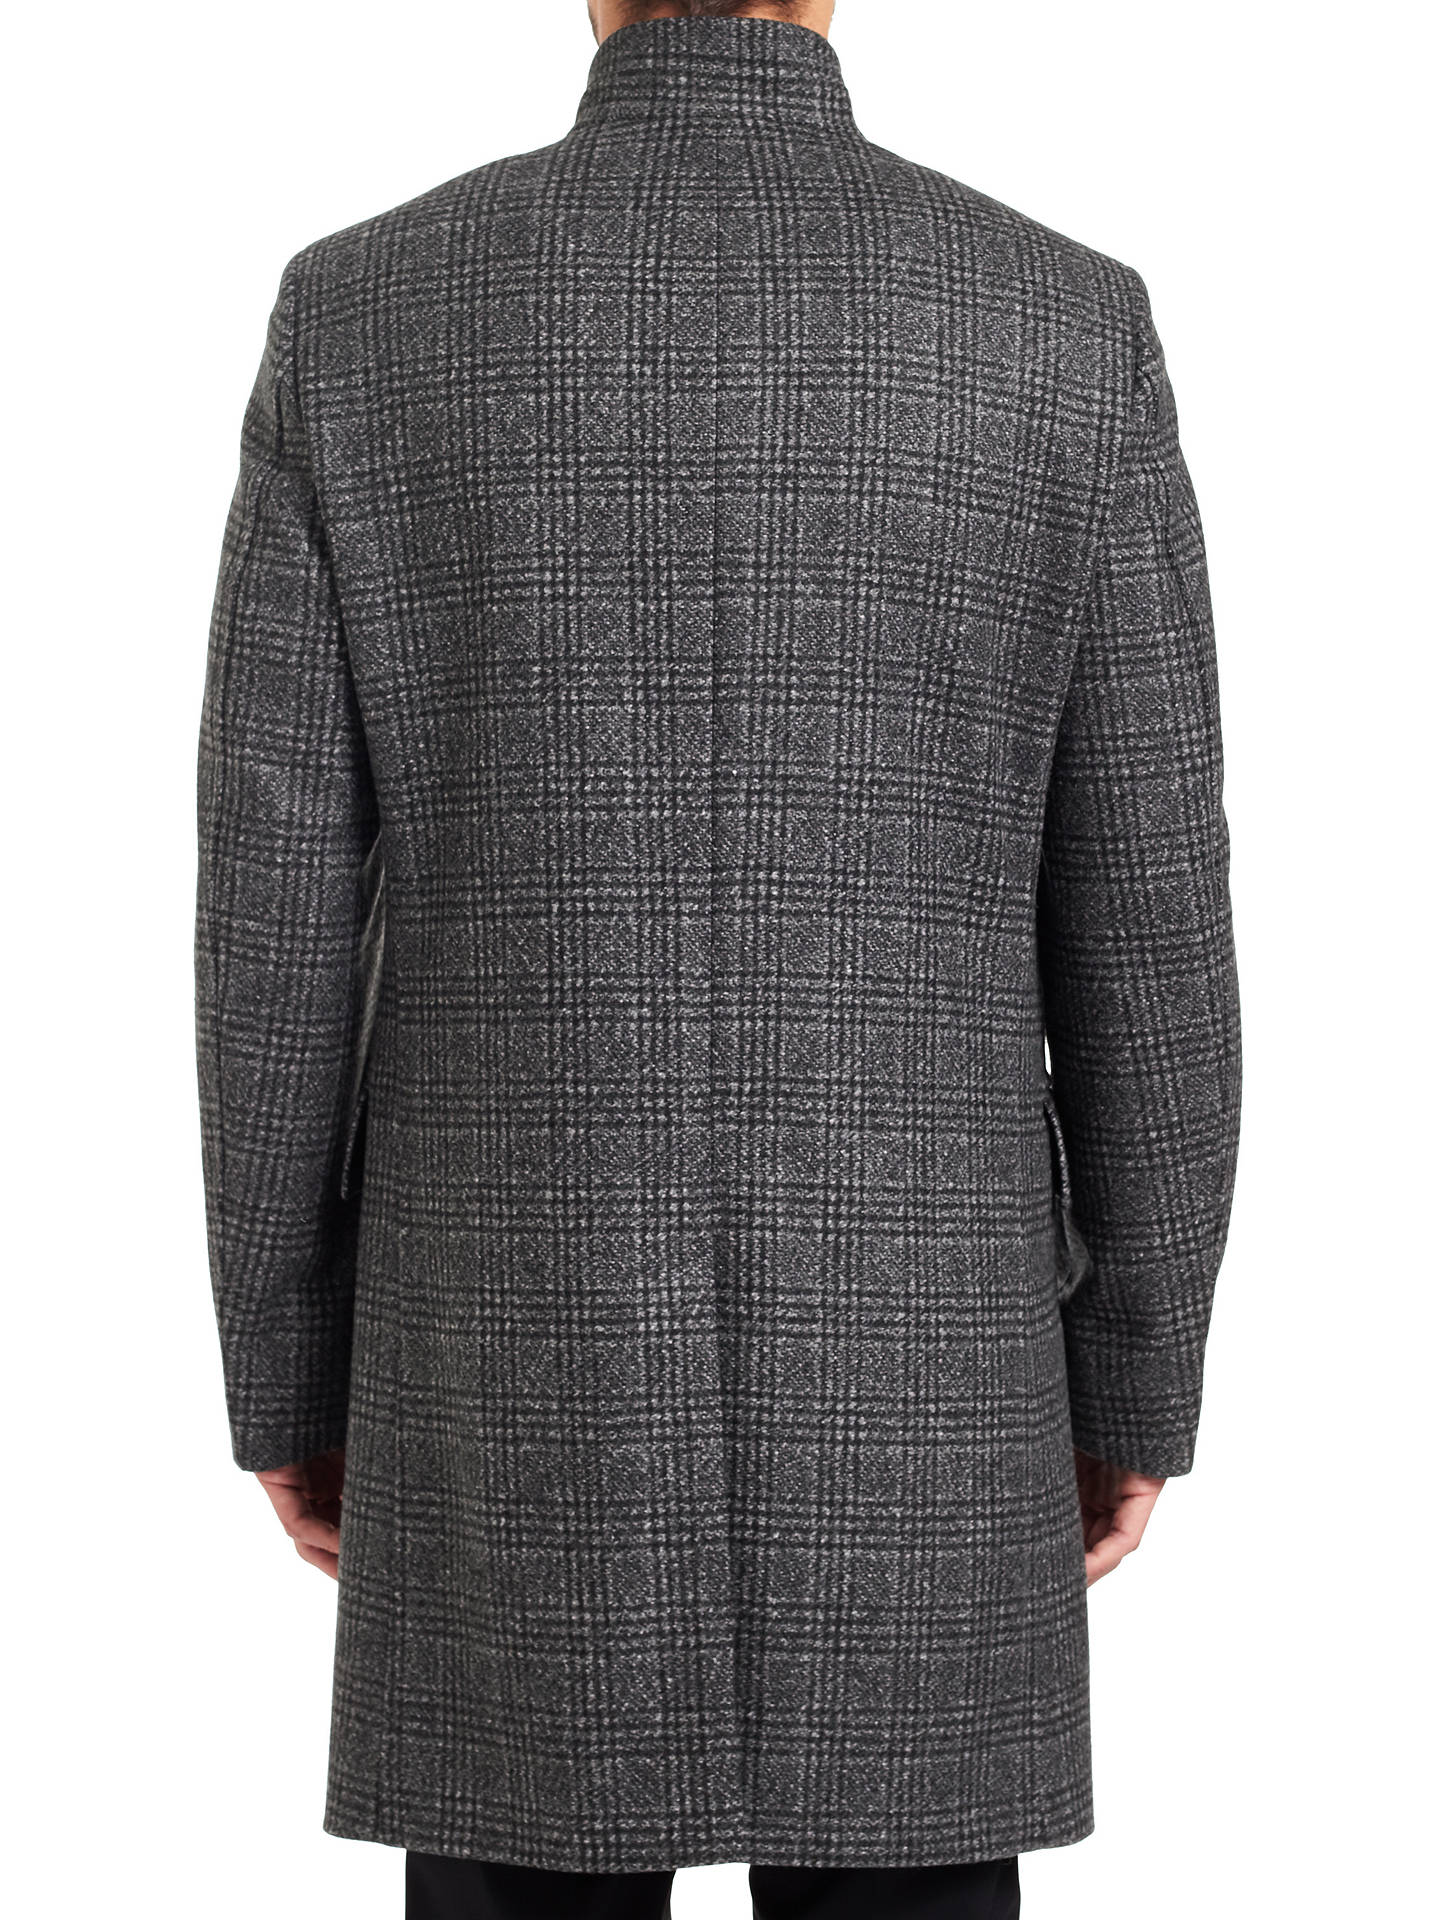 BuyHUGO by Hugo Boss C-Sintrax Coat, Charcoal, 36R Online at johnlewis.com